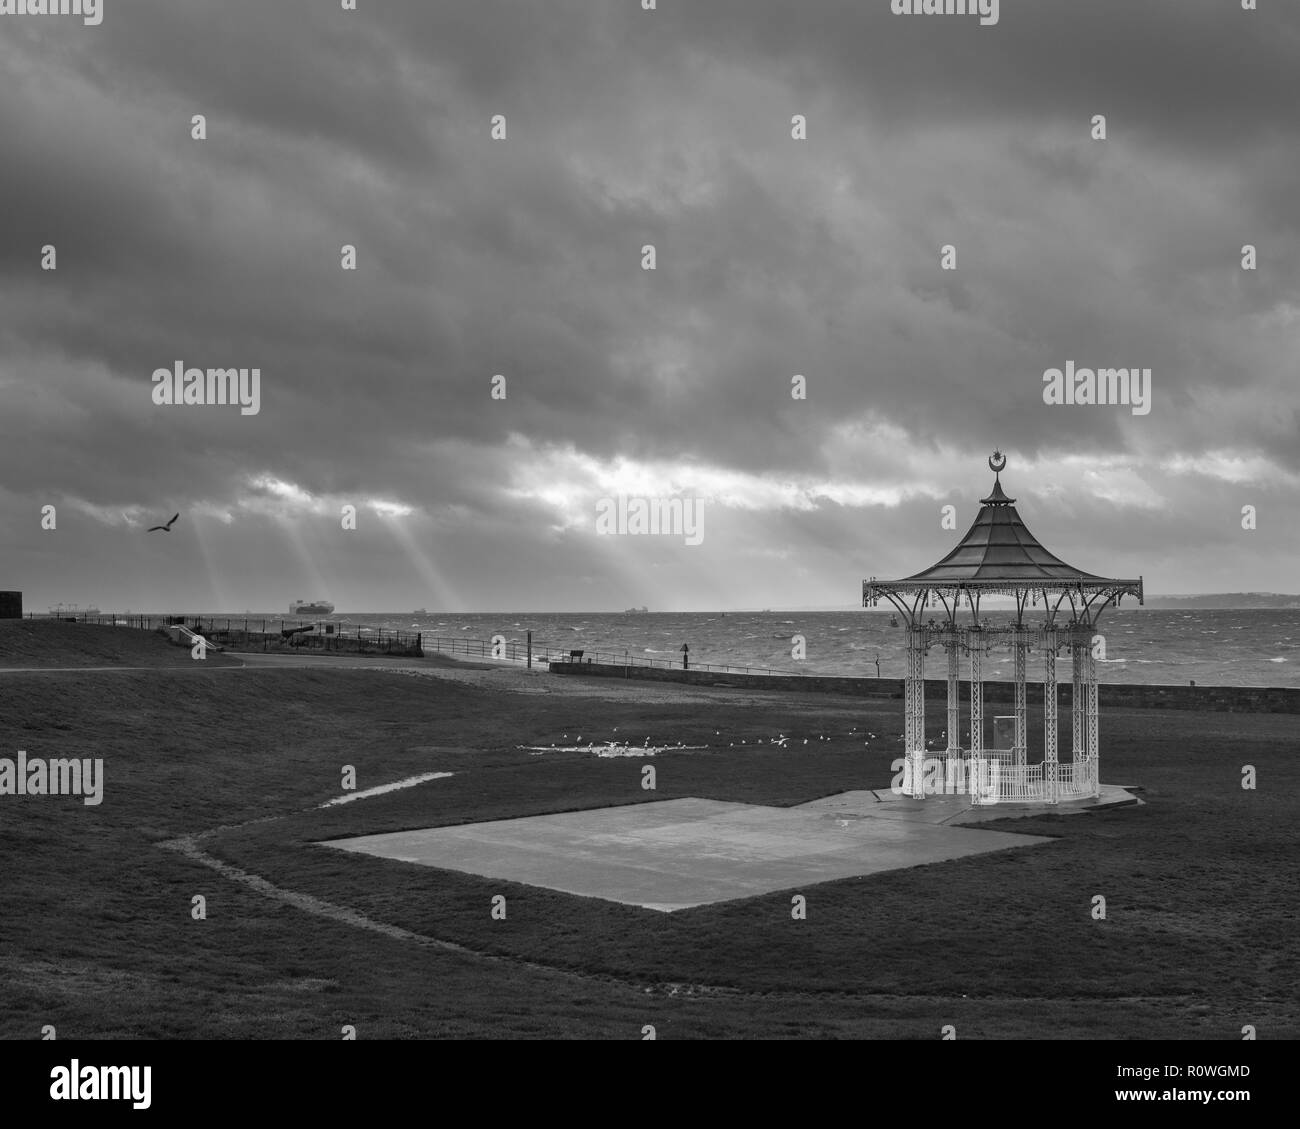 Stormy Southsea Beach with light rays over the bandstand in black and white, Southsea, Portsmouth, Hampshire, UK - Stock Image